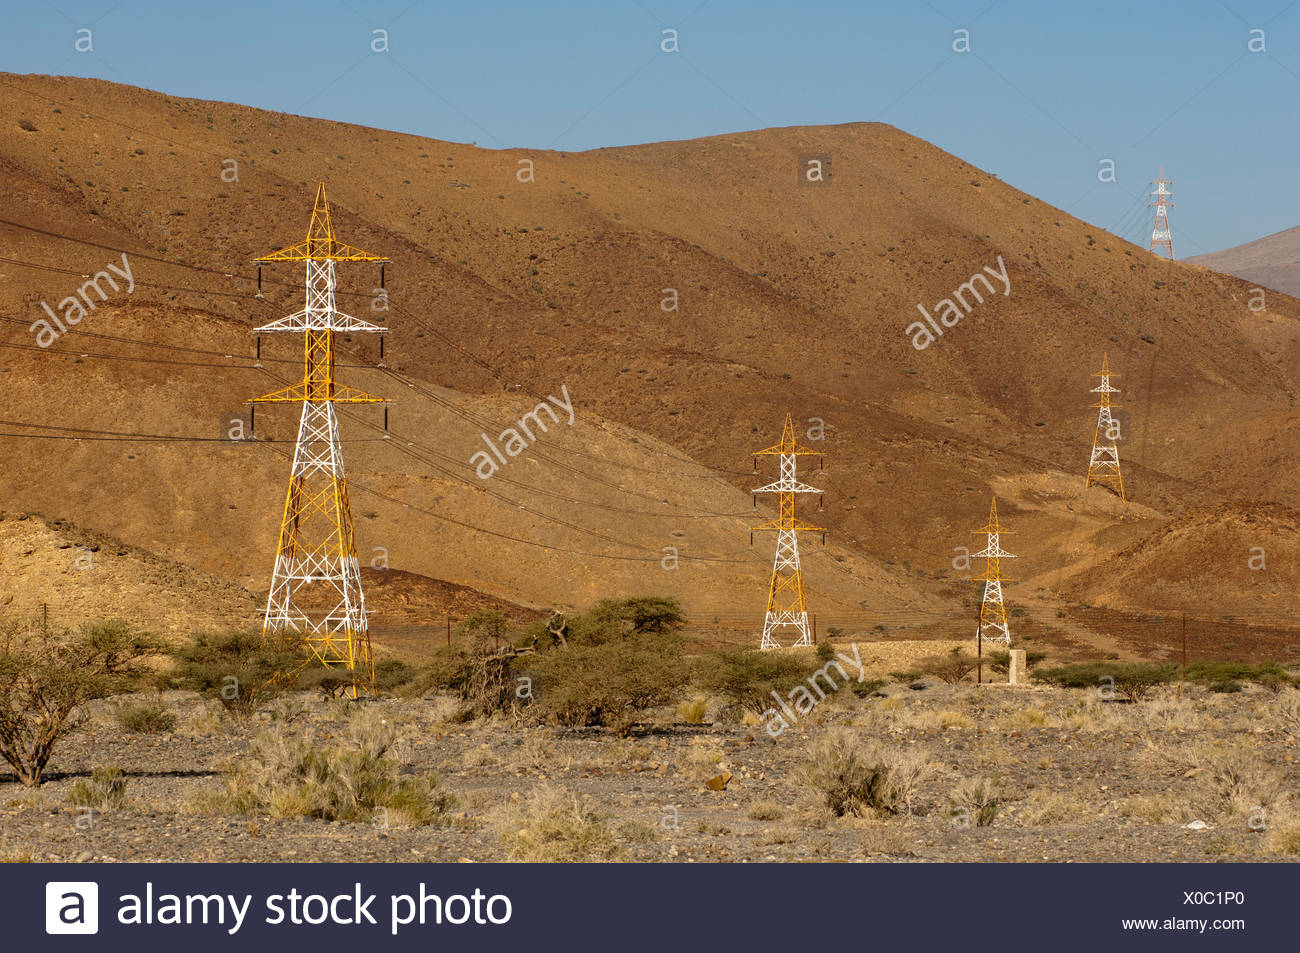 Red White Electricity Pylons Stockfotos & Red White Electricity ...